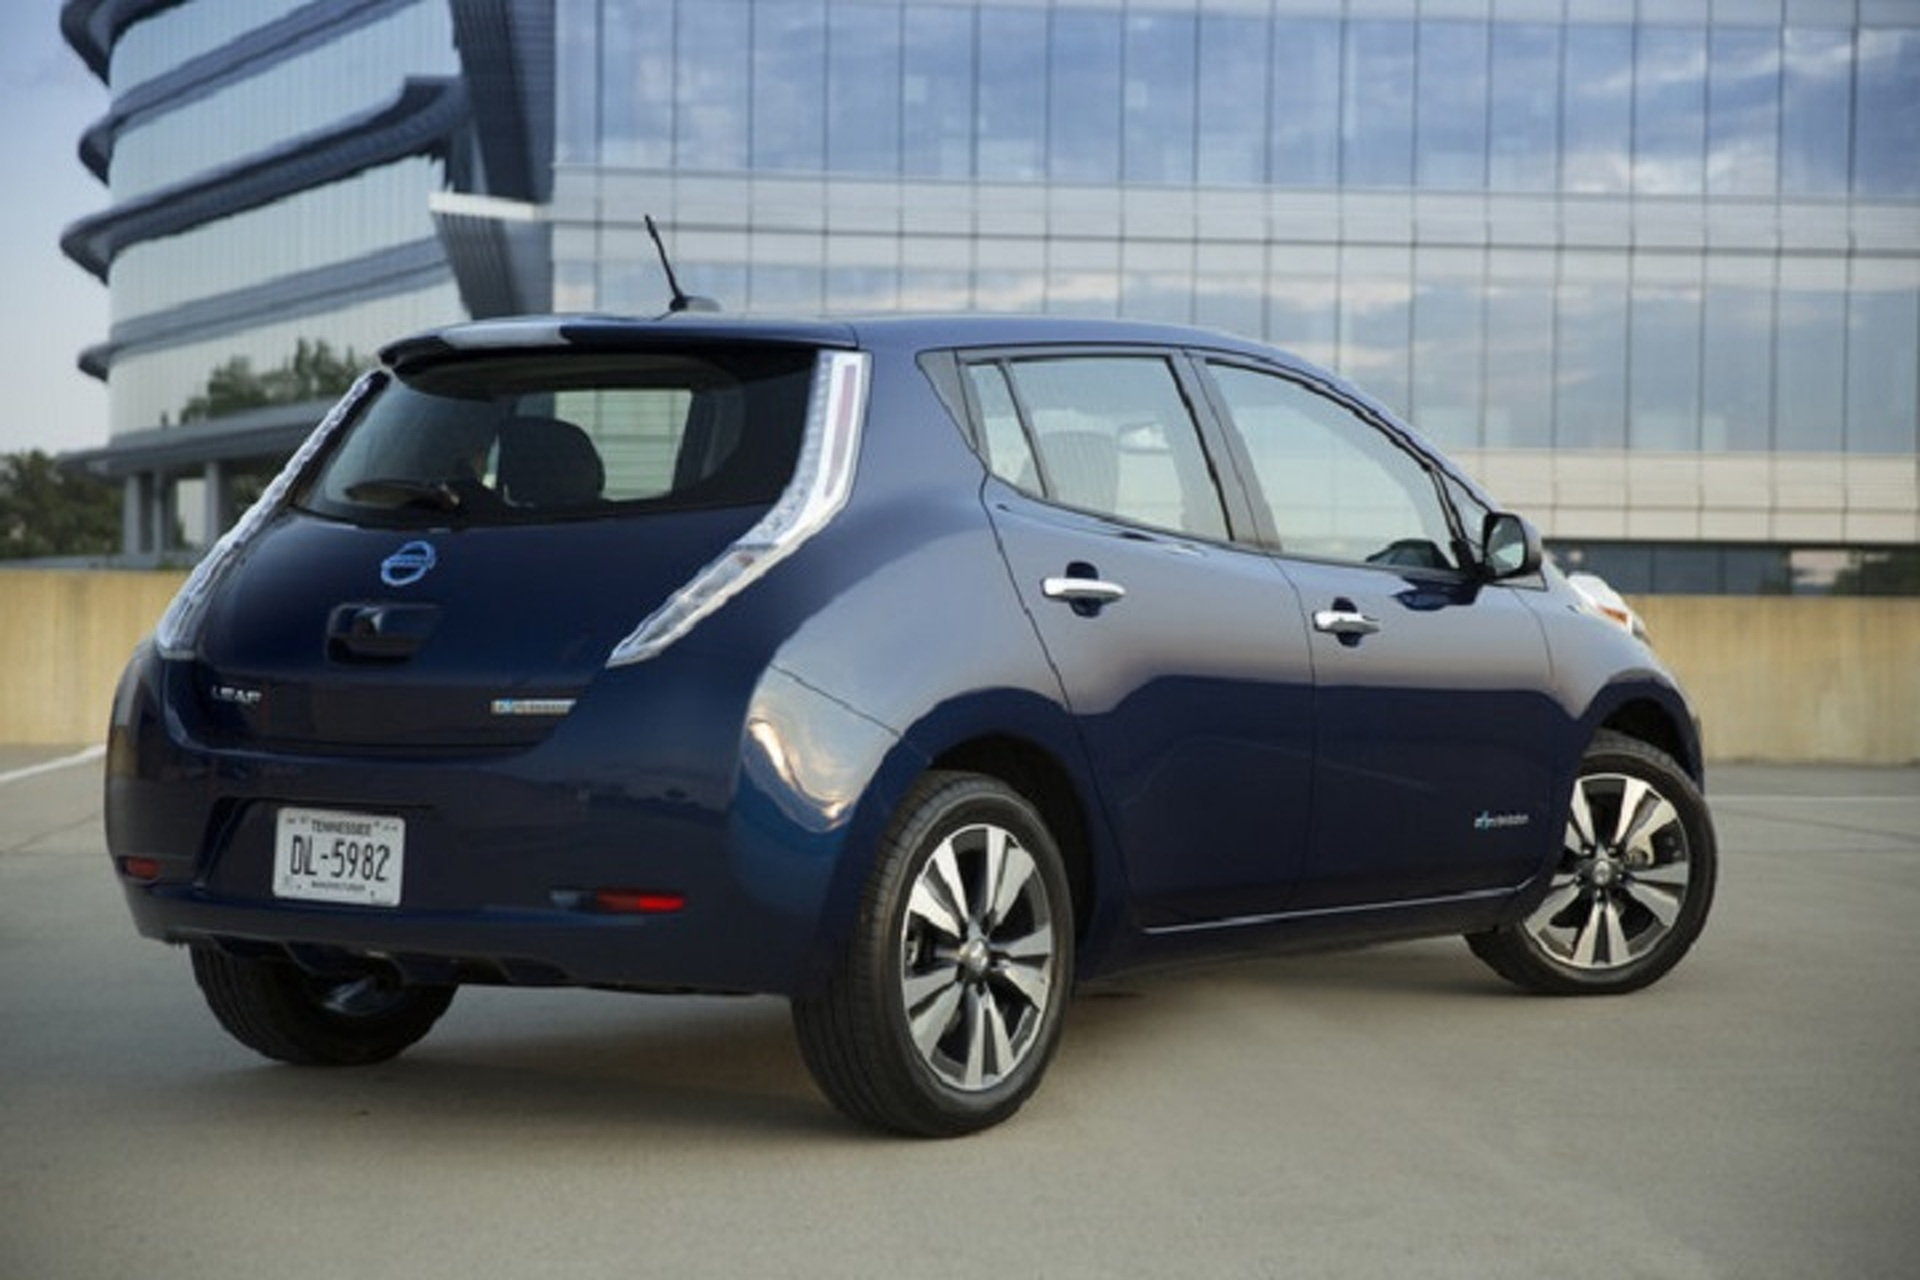 Nissan Takes Connected Car App Offline After Vulnerability Exposed